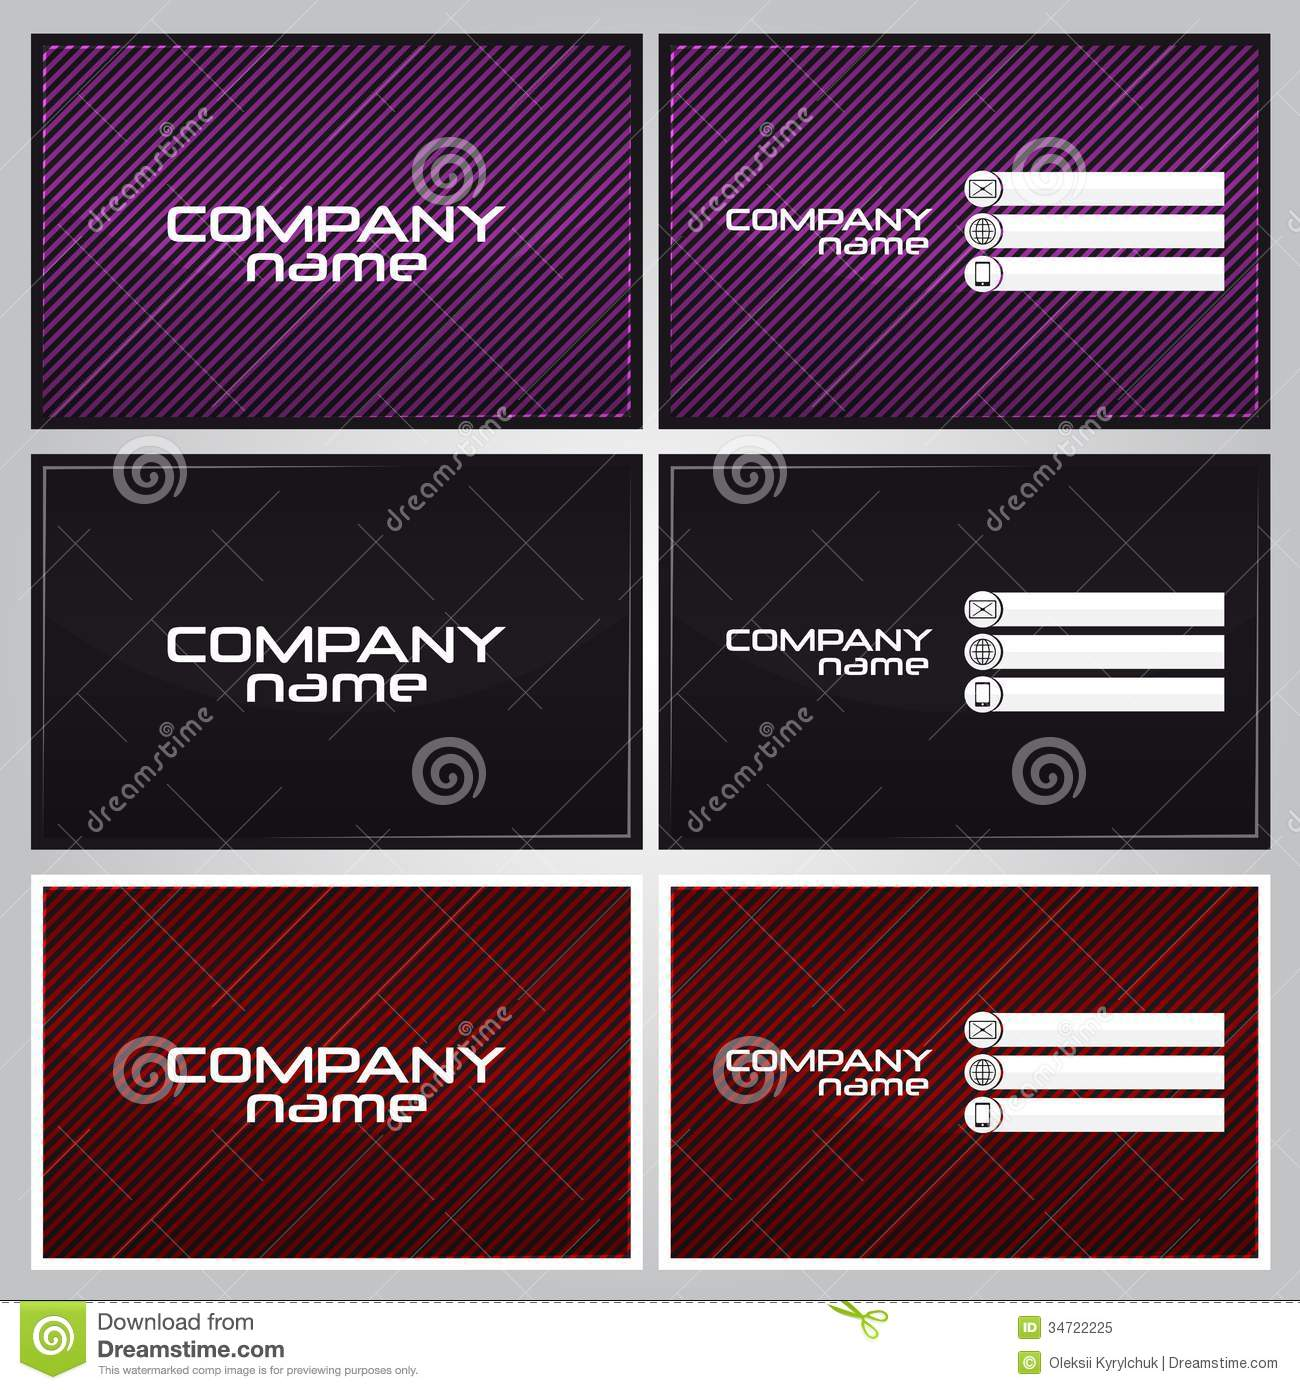 Business card design stock vector. Illustration of stationery - 34722225